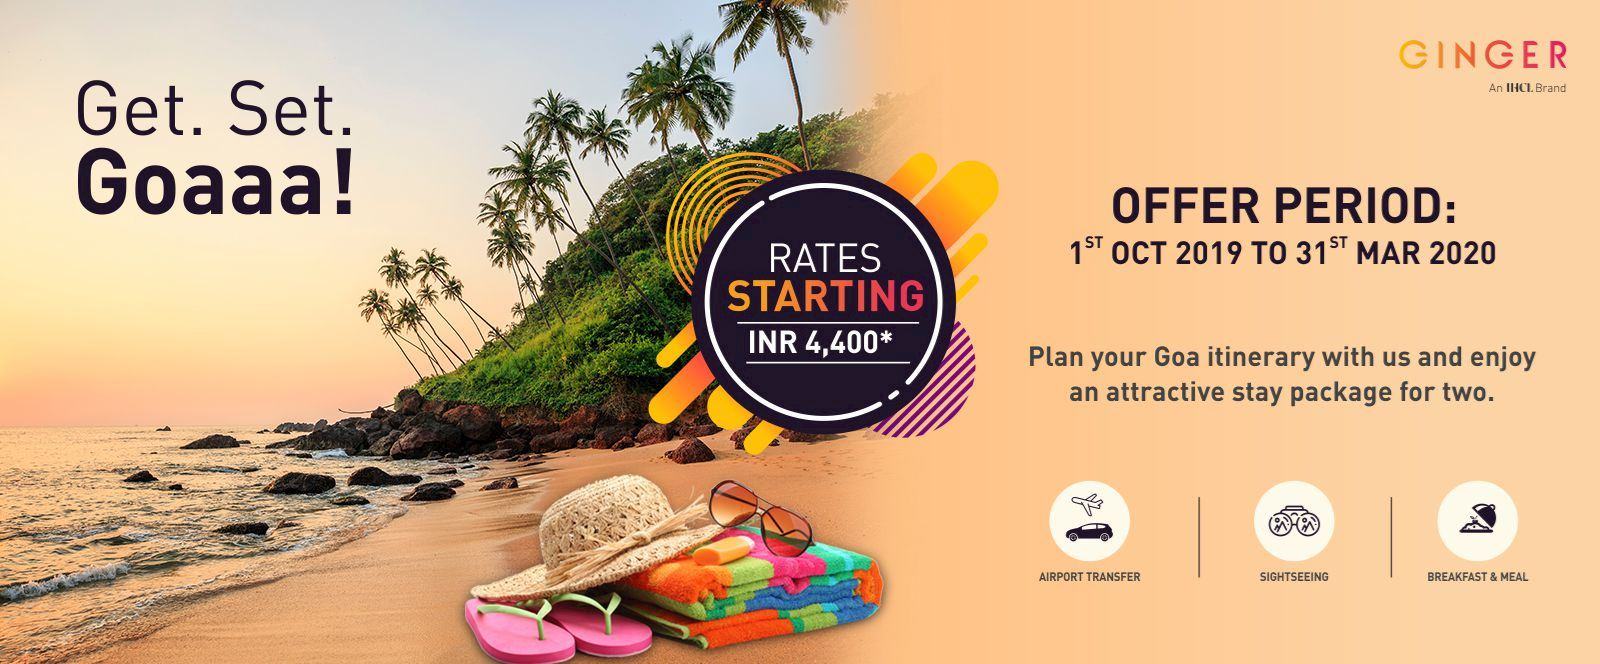 Ginger Goa Tour Package. Rate starting at Rs.4,400/-